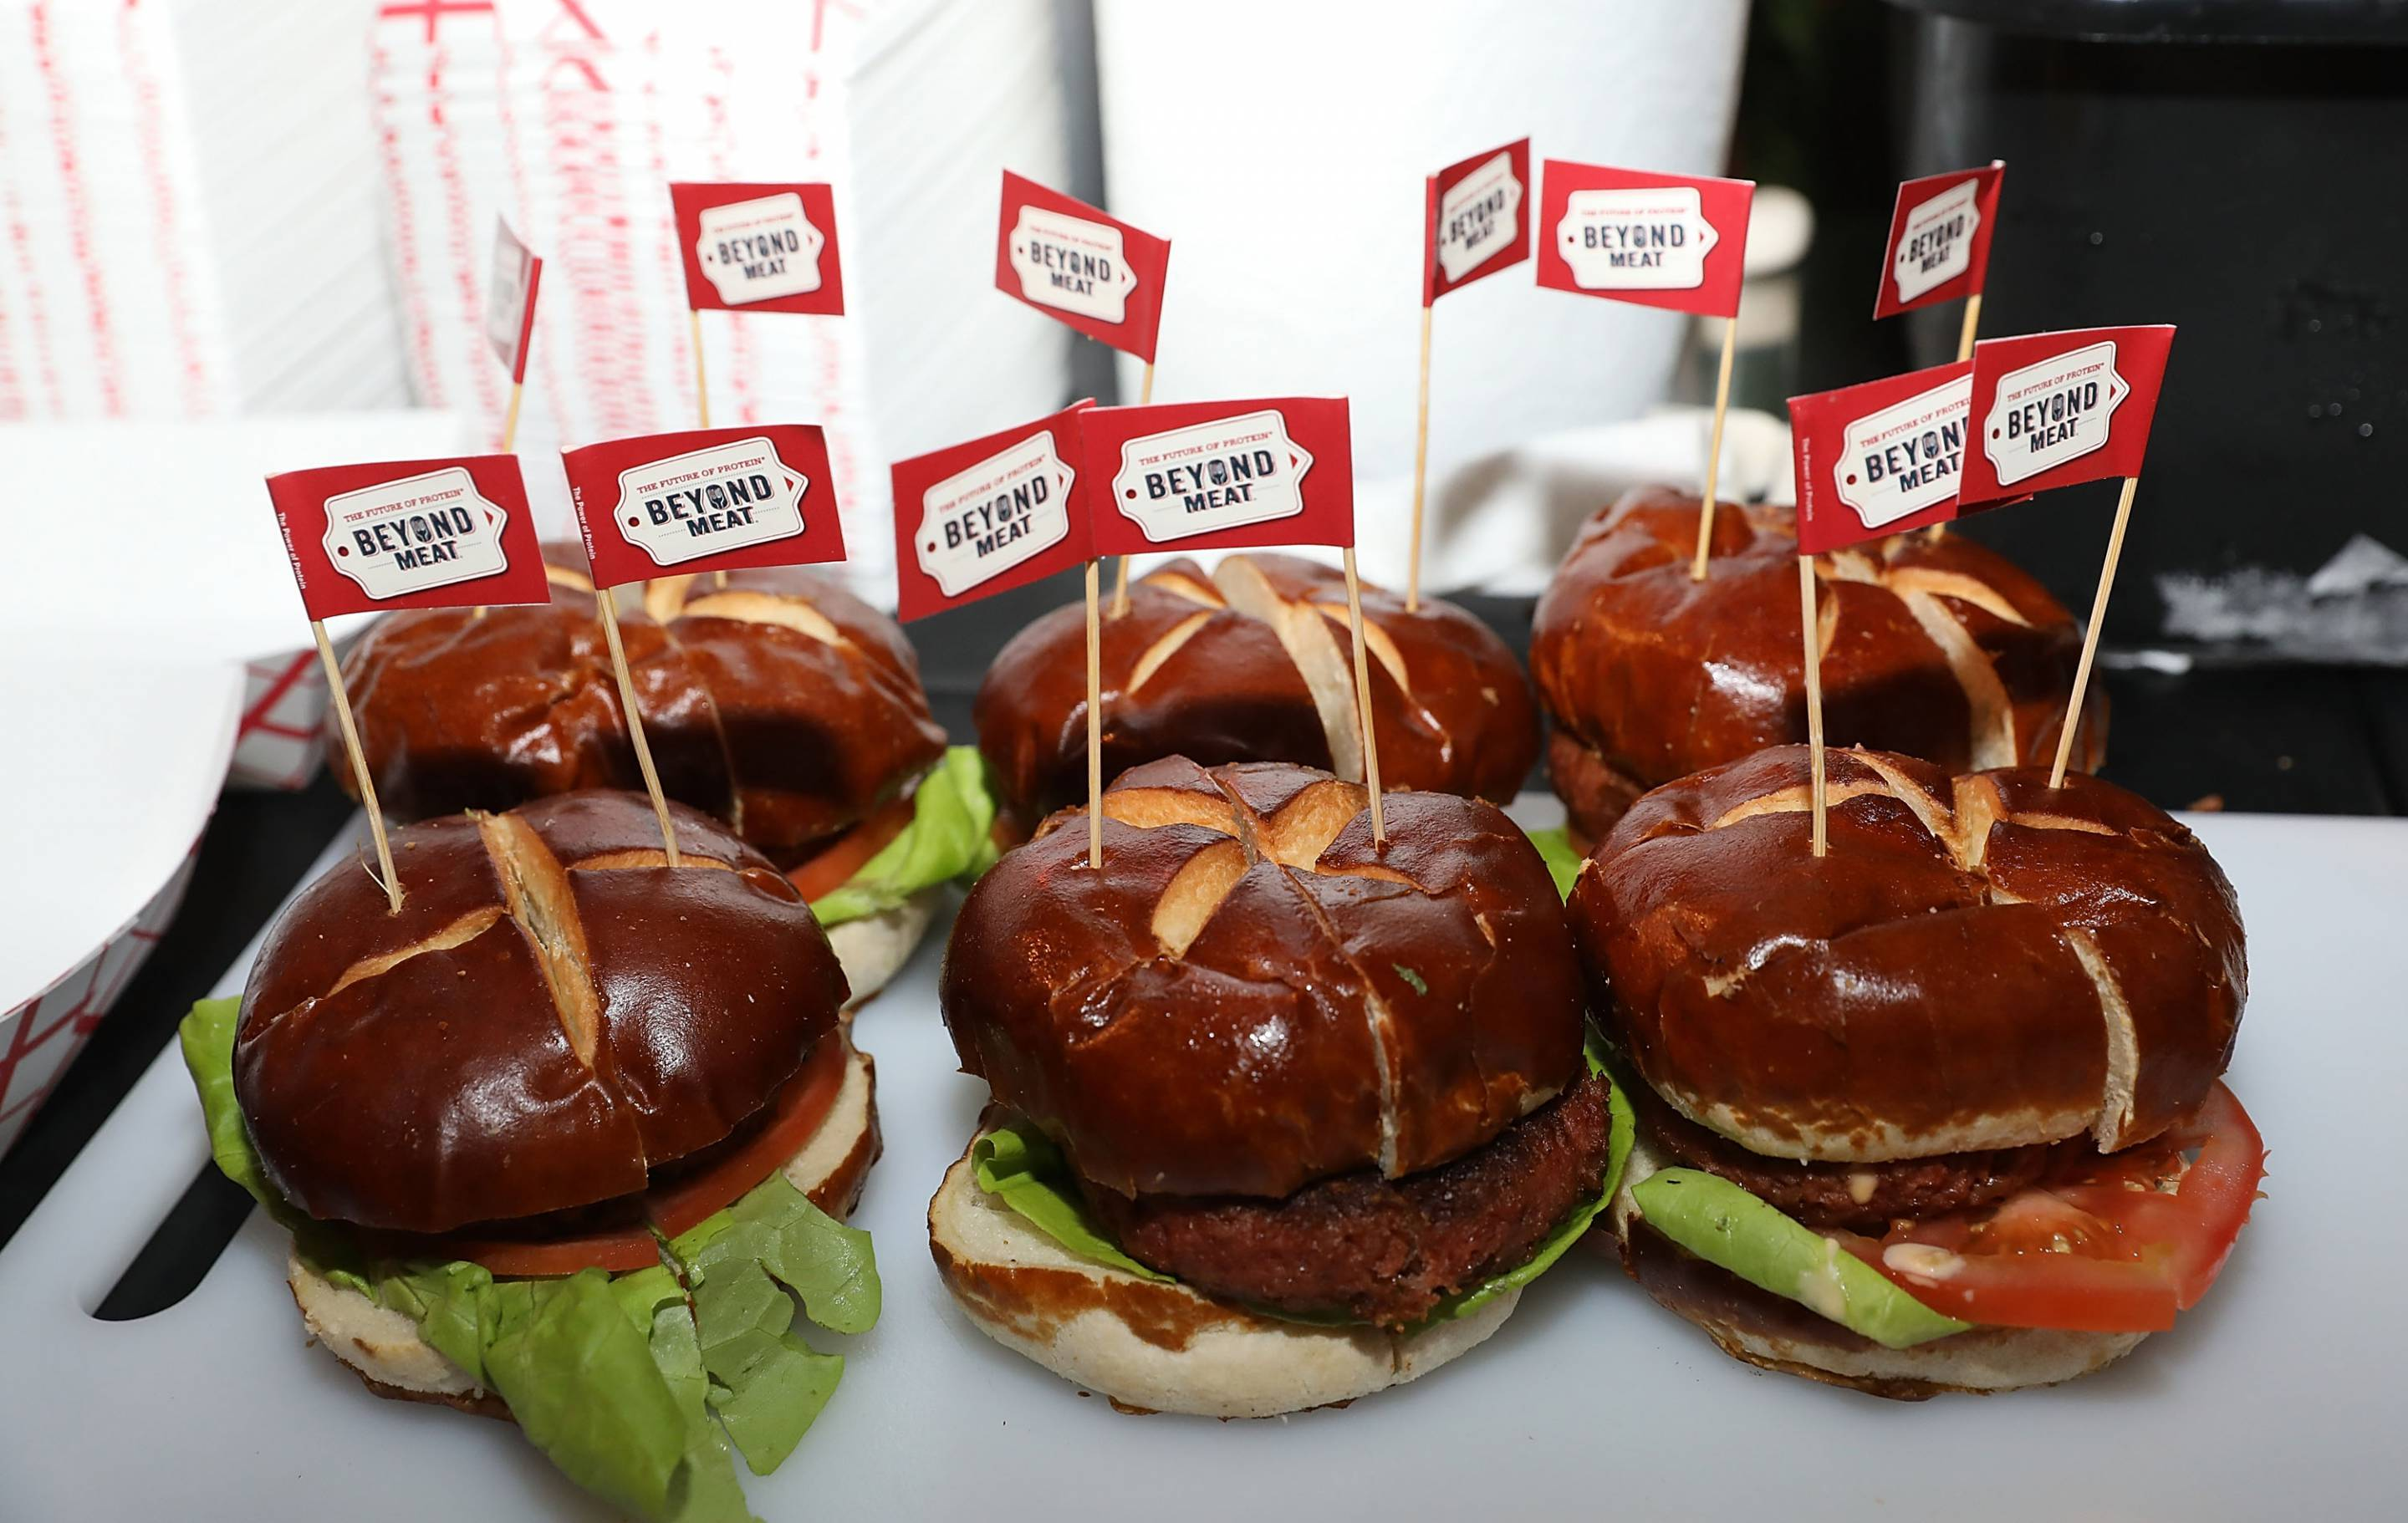 Beyond Meat plant-based burgers are served at the South Beach Wine & Food Festival on Feb. 24, 2017 in Miami Beach, Fla.